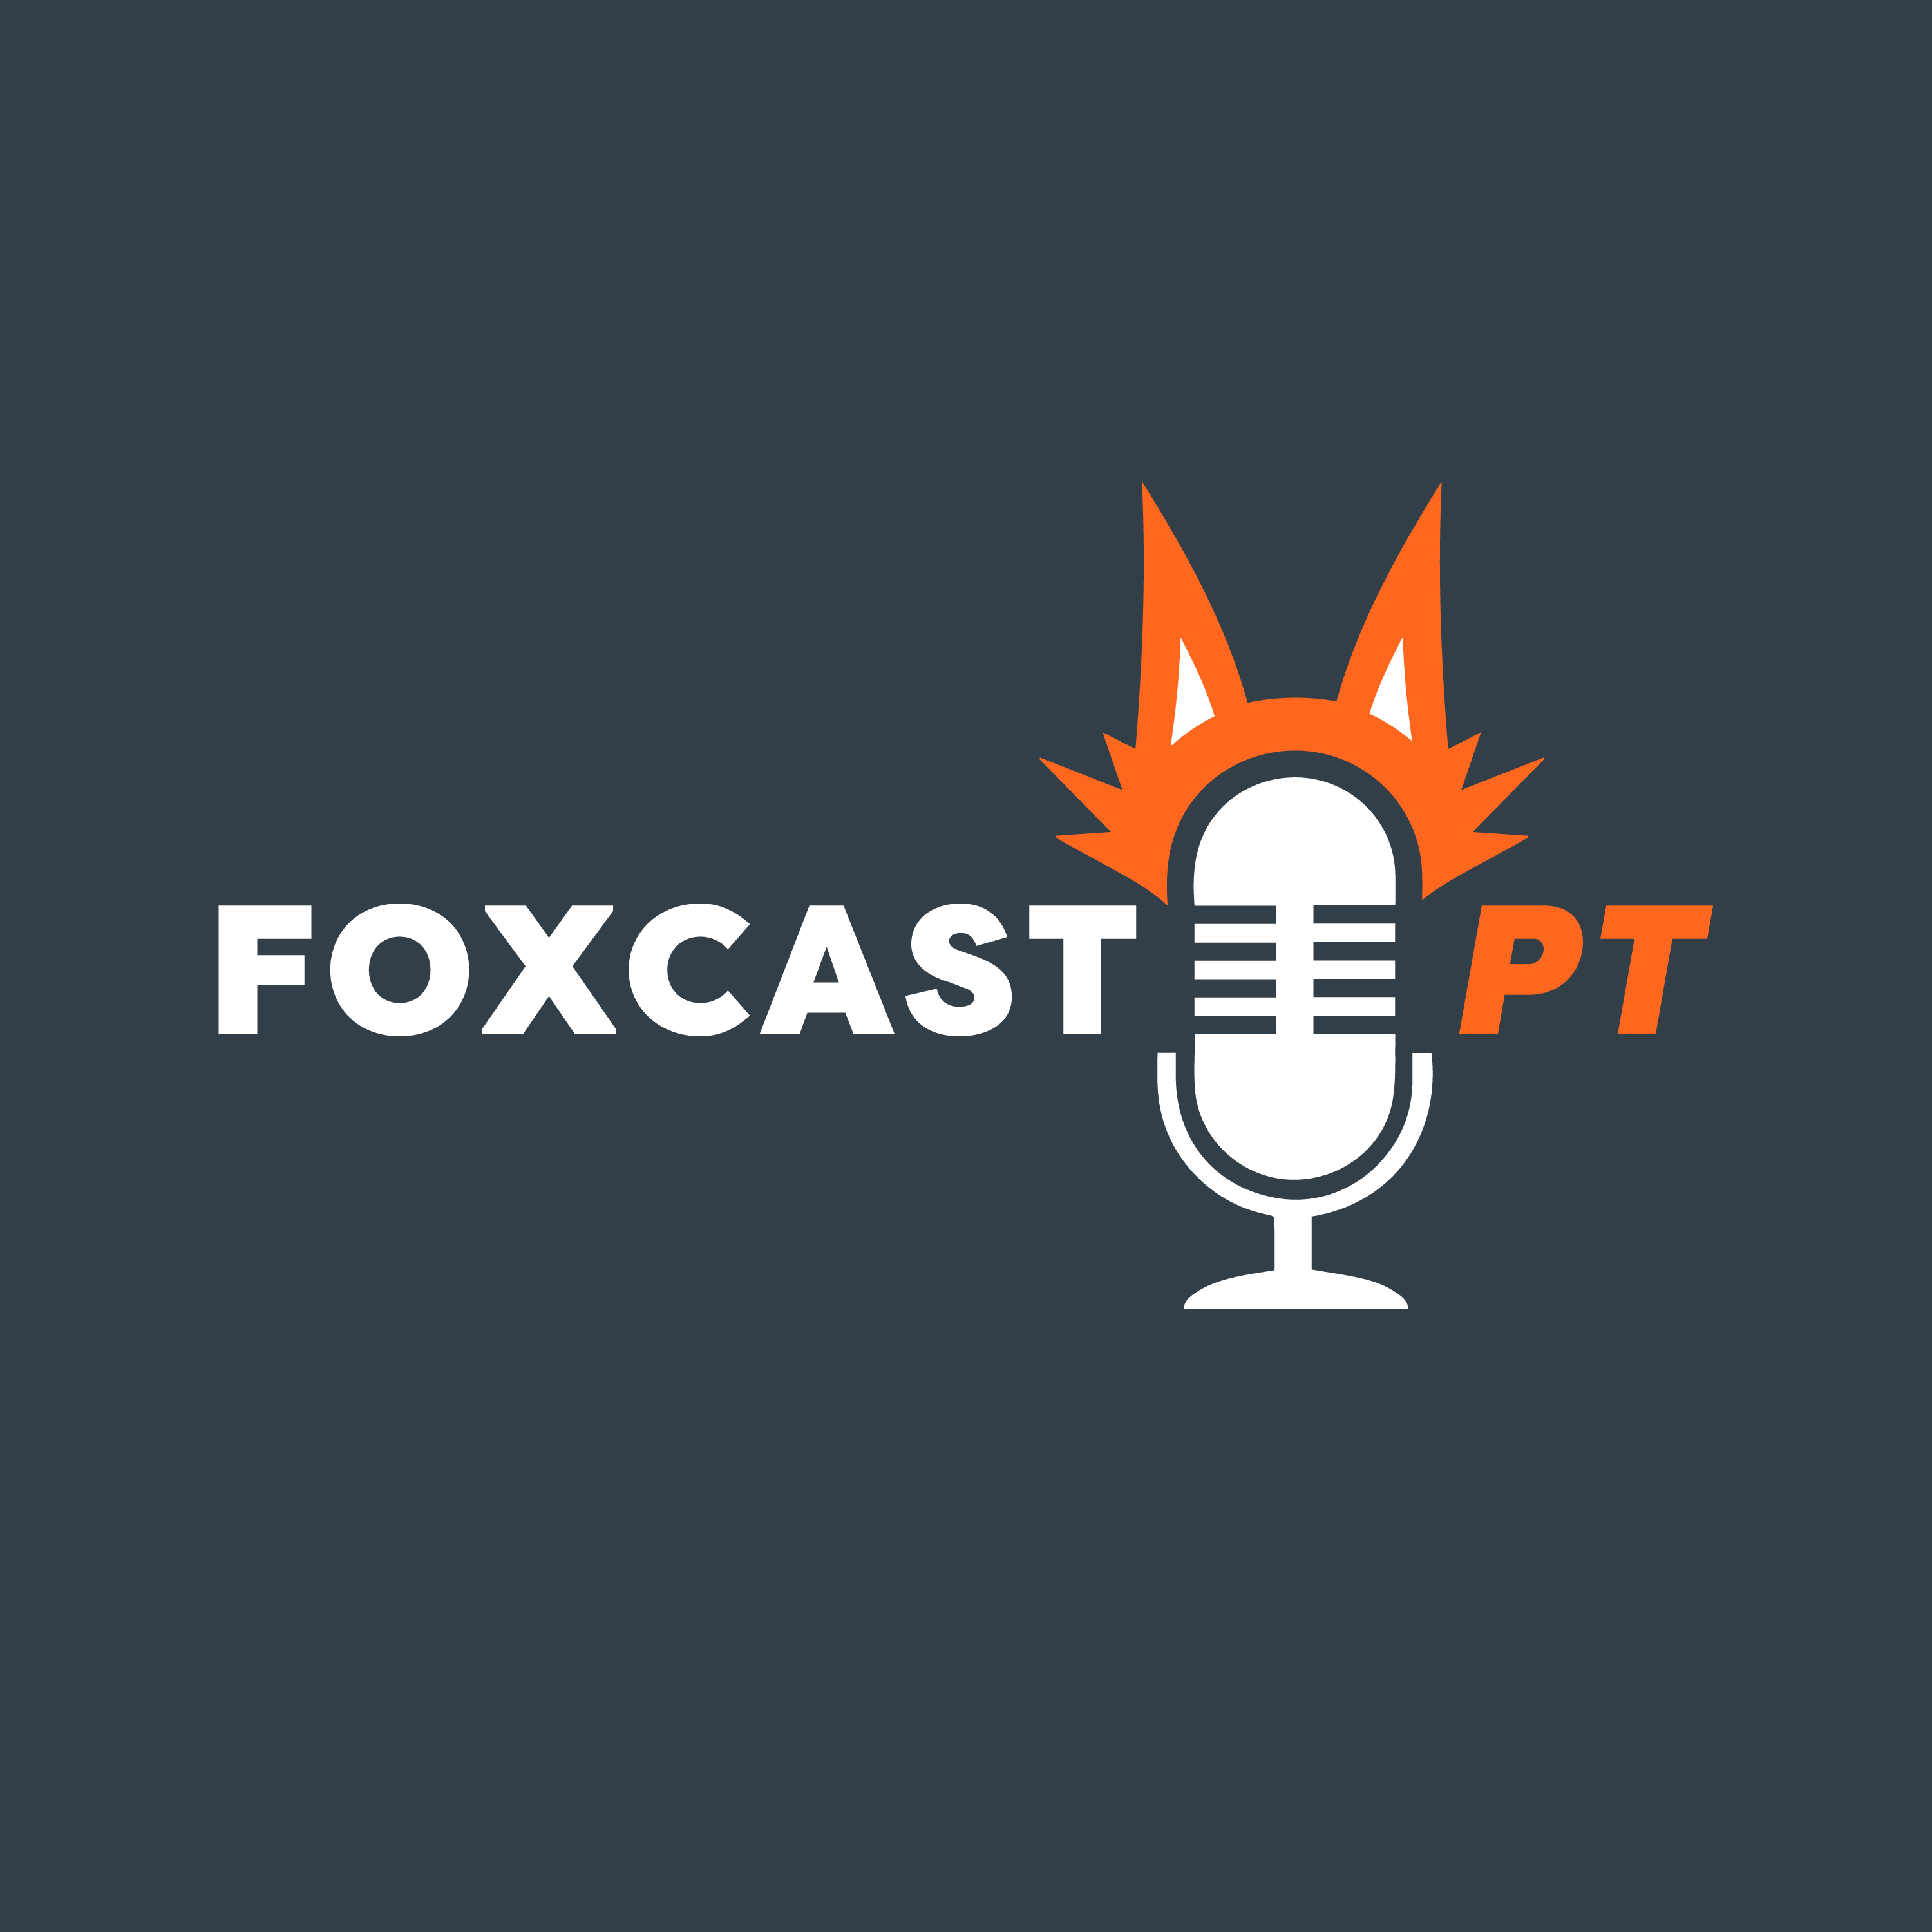 FOXcast PT